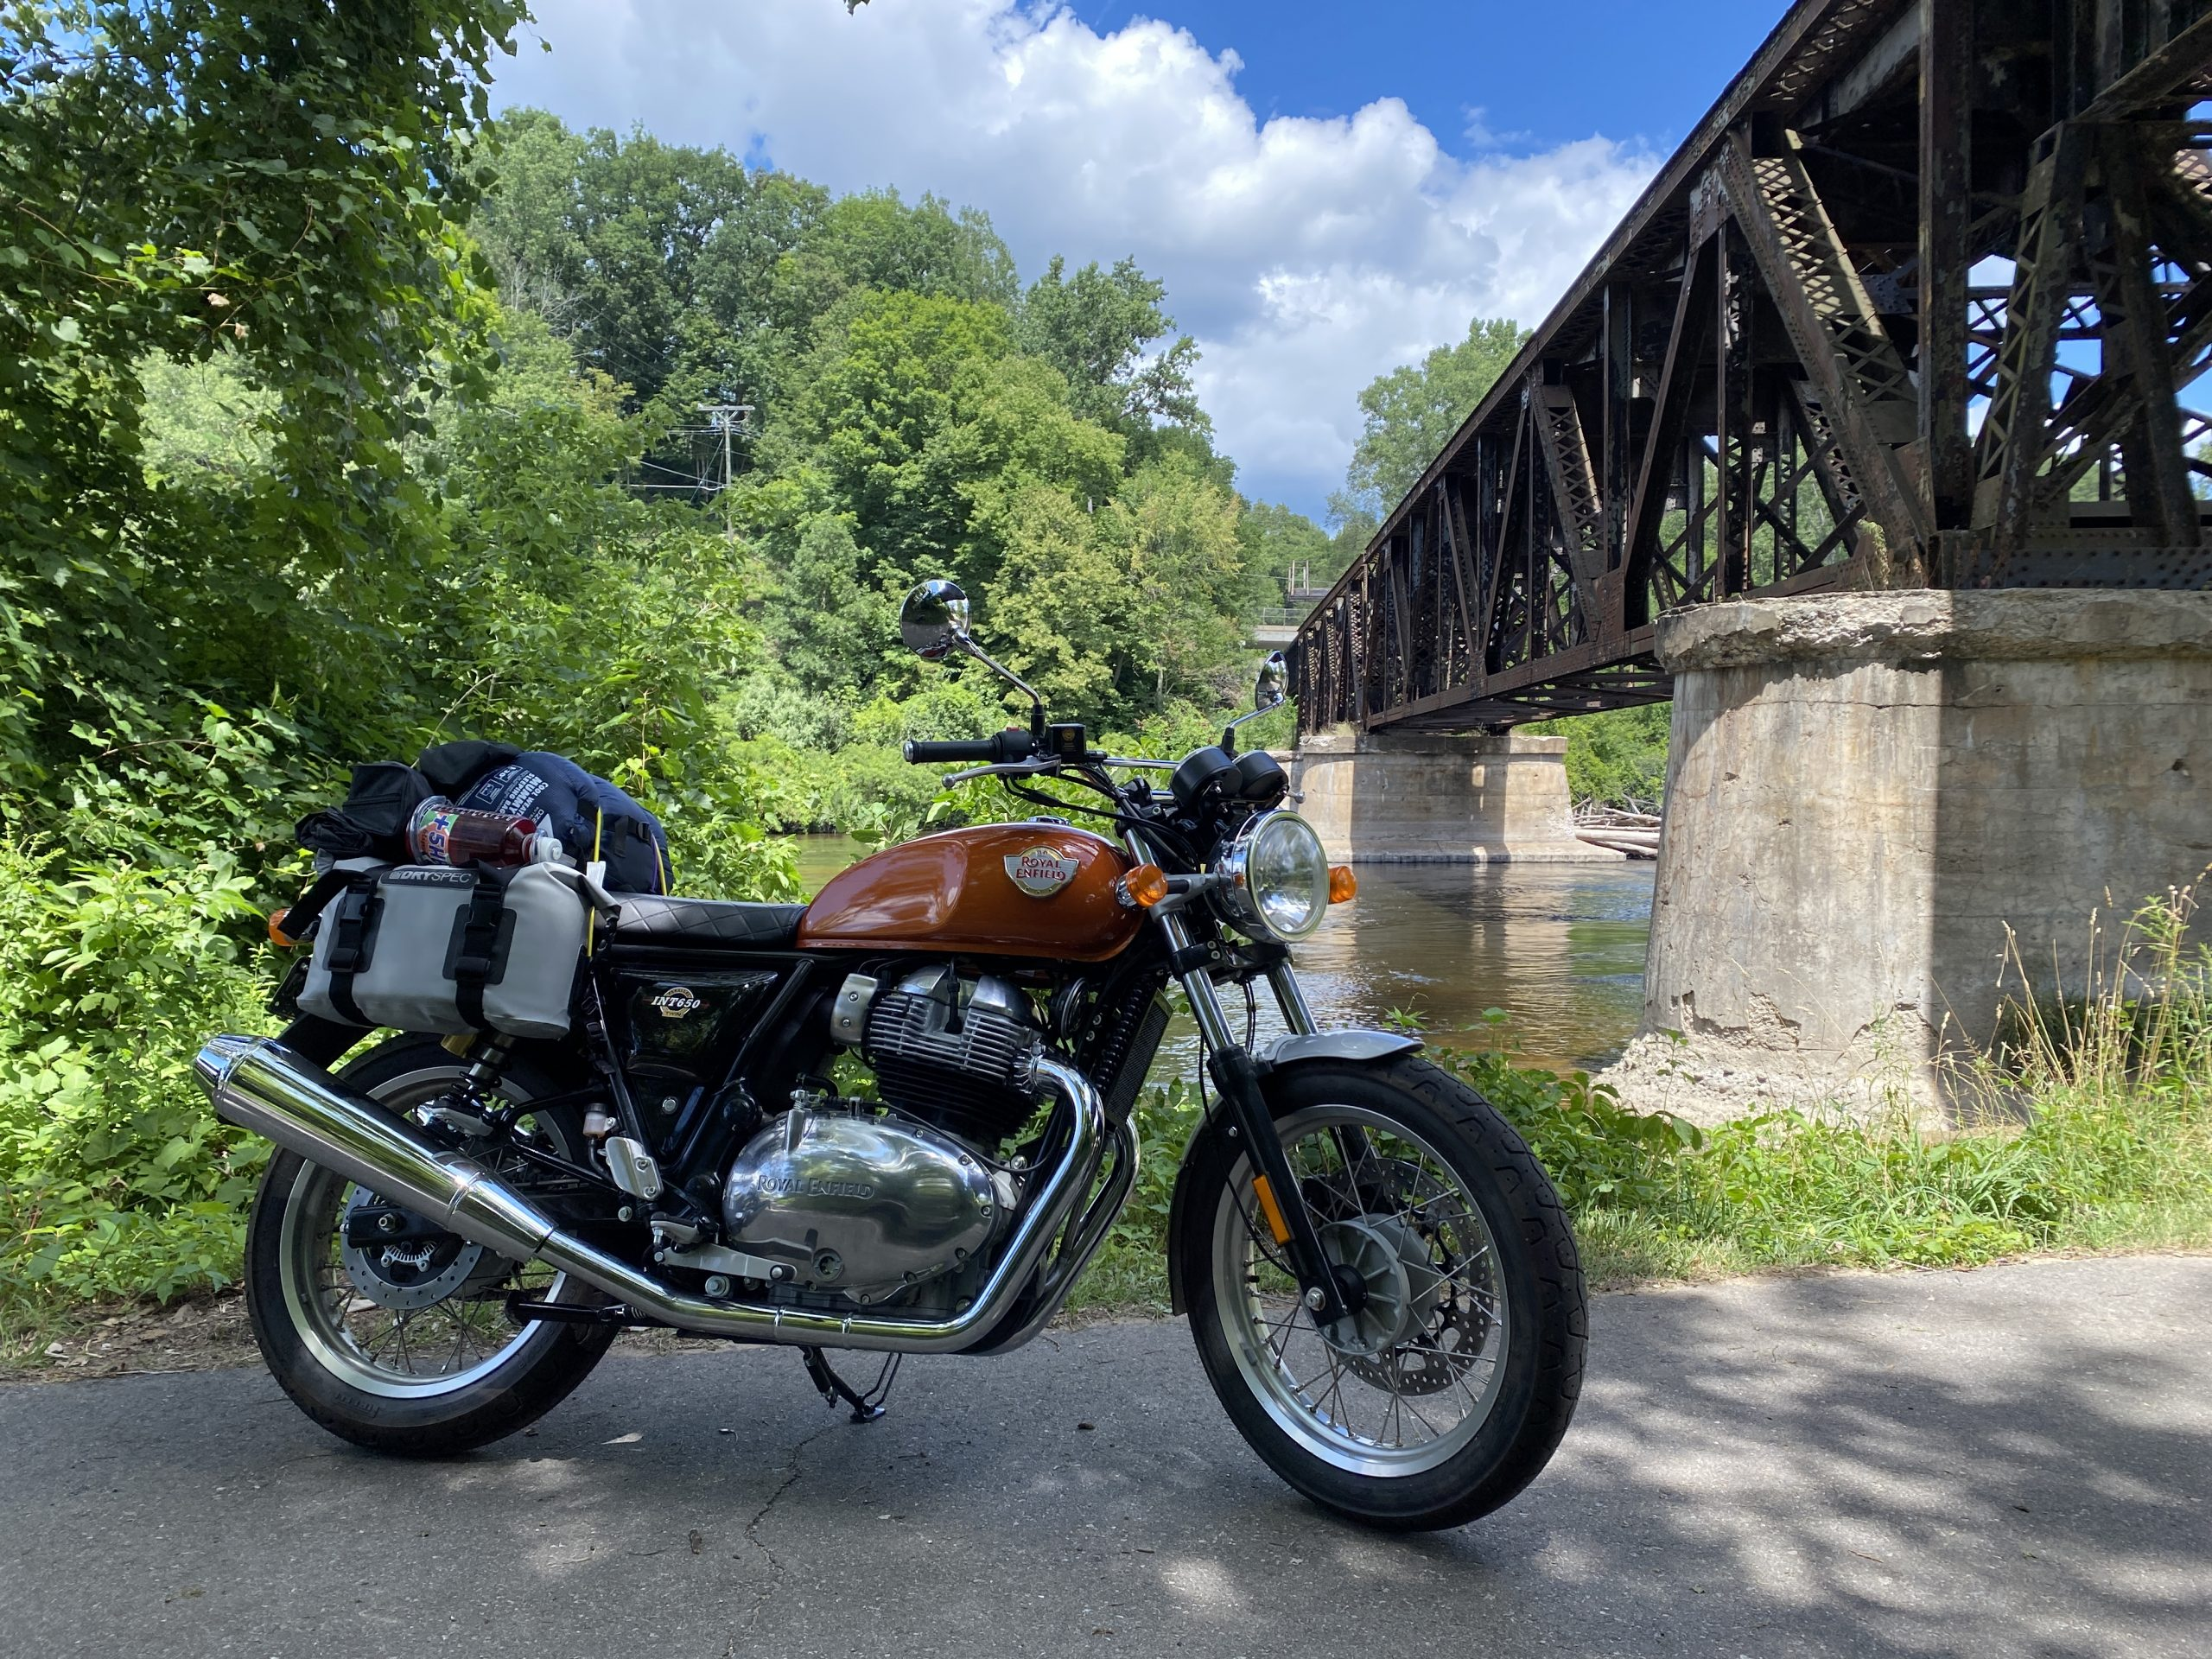 gingerman moto trip Royal Enfield with luggage